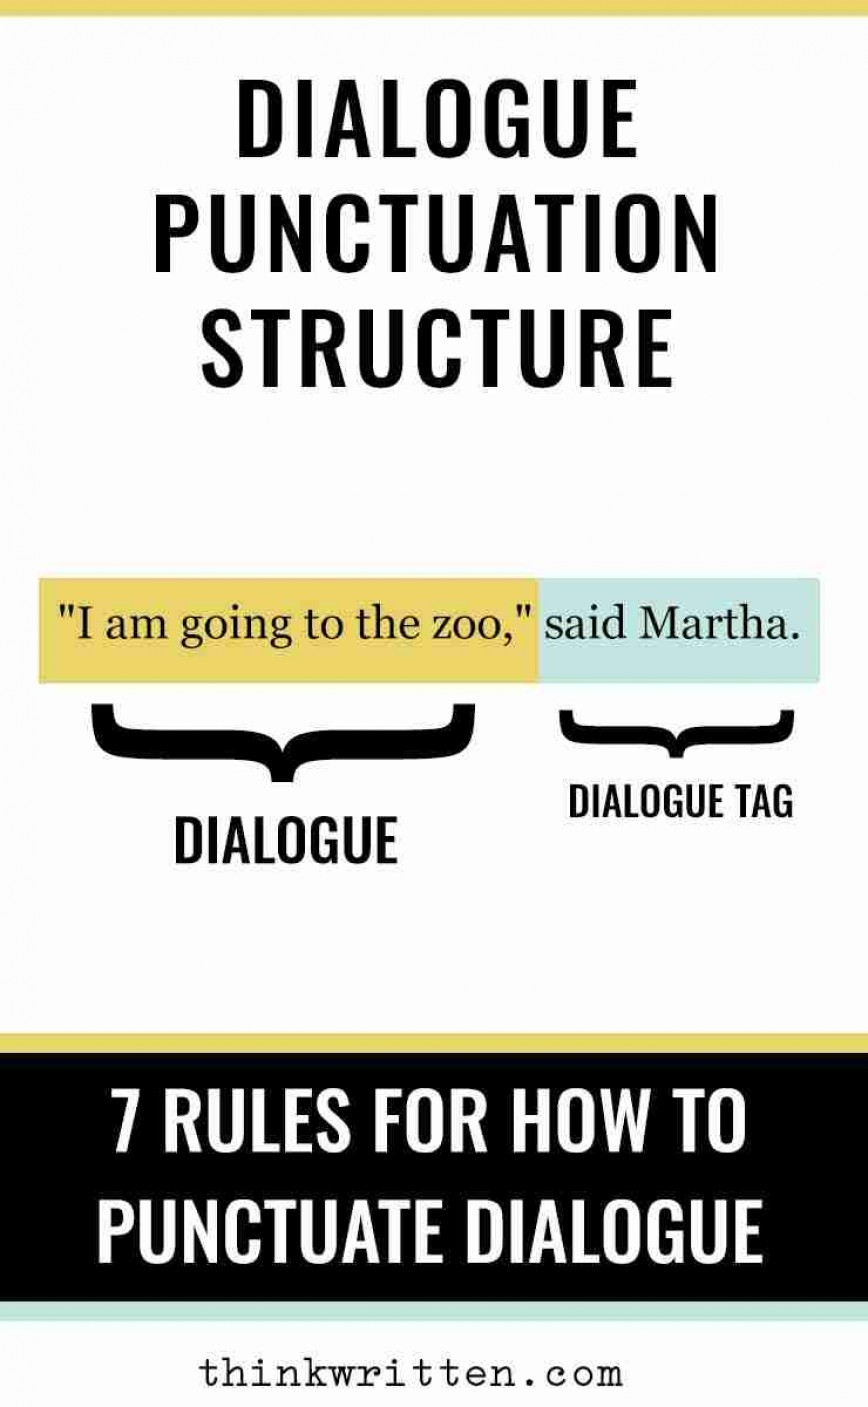 012 Dialogue Punctuation Structure When Quoting In An Essay Where Is The Exceptional